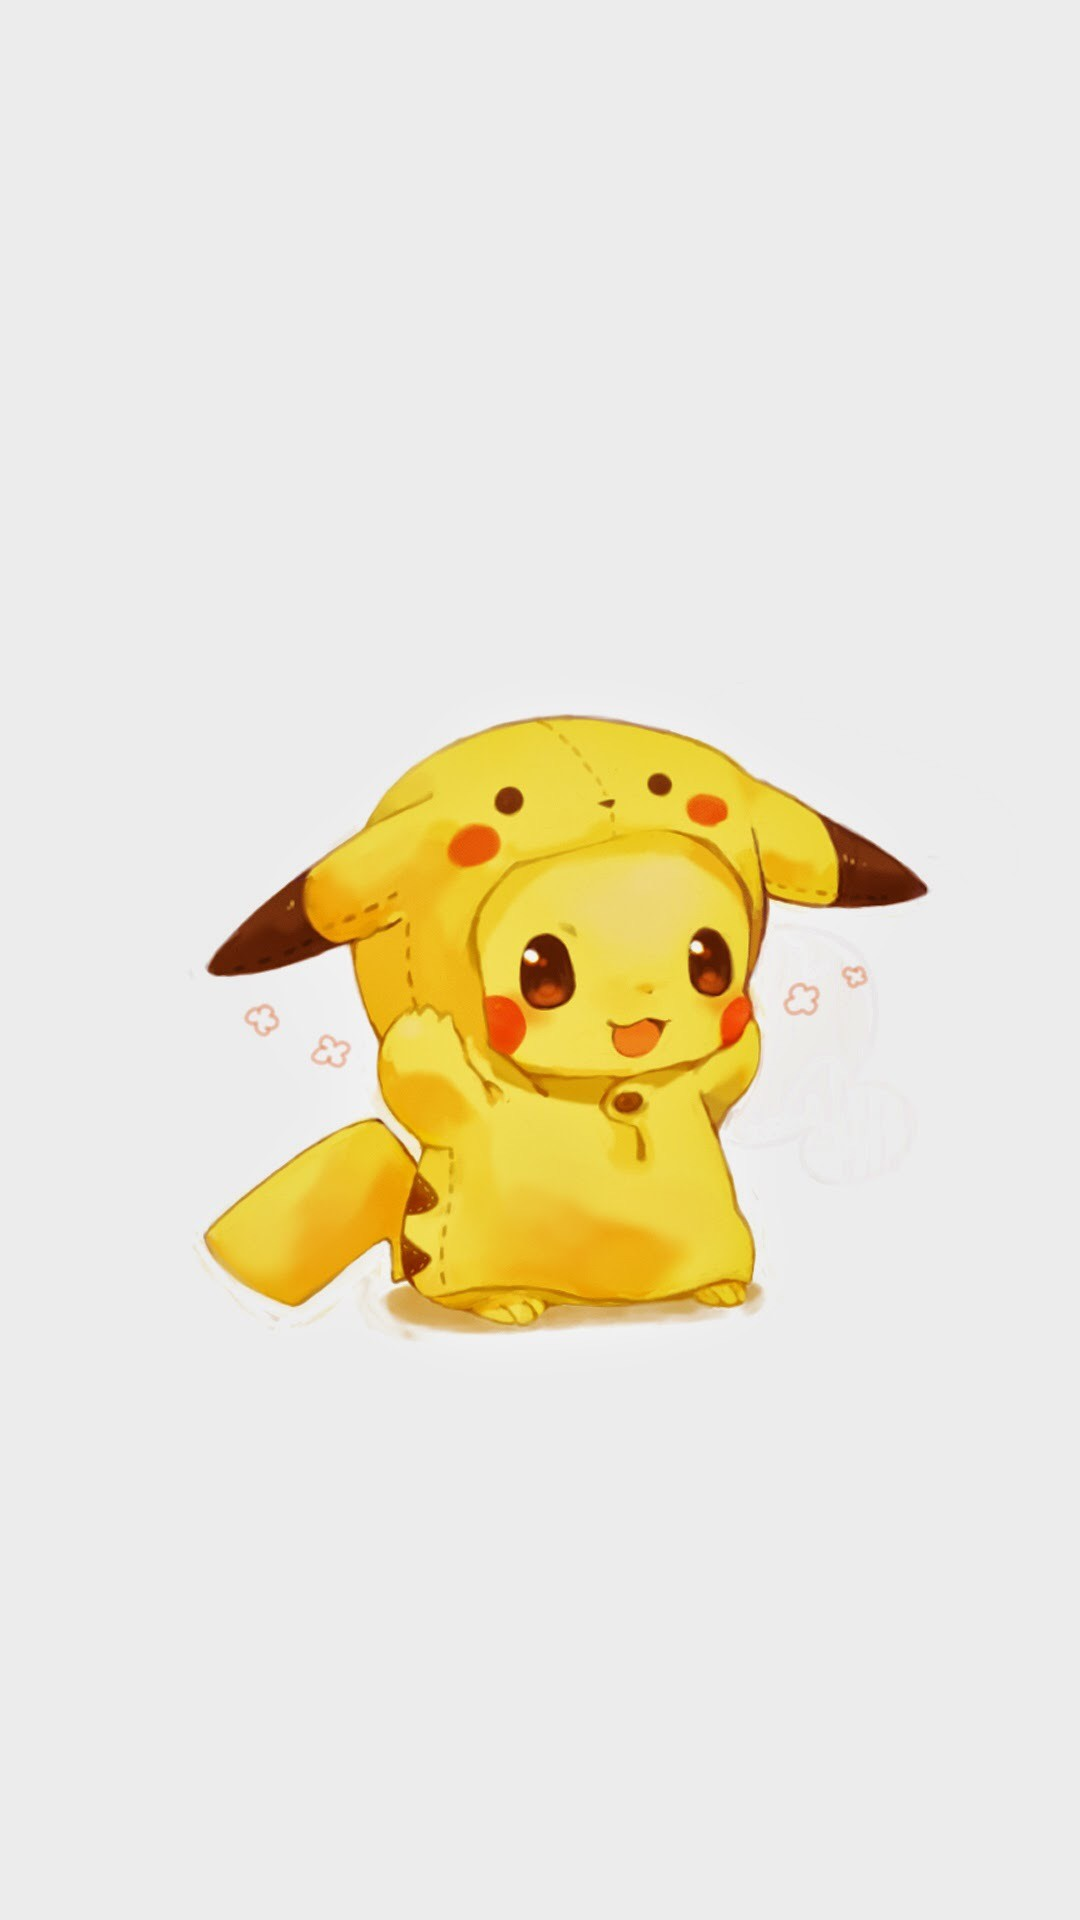 Tap image for more funny cute Pikachu wallpaper! Pikachu – @mobile9 |  Wallpapers for